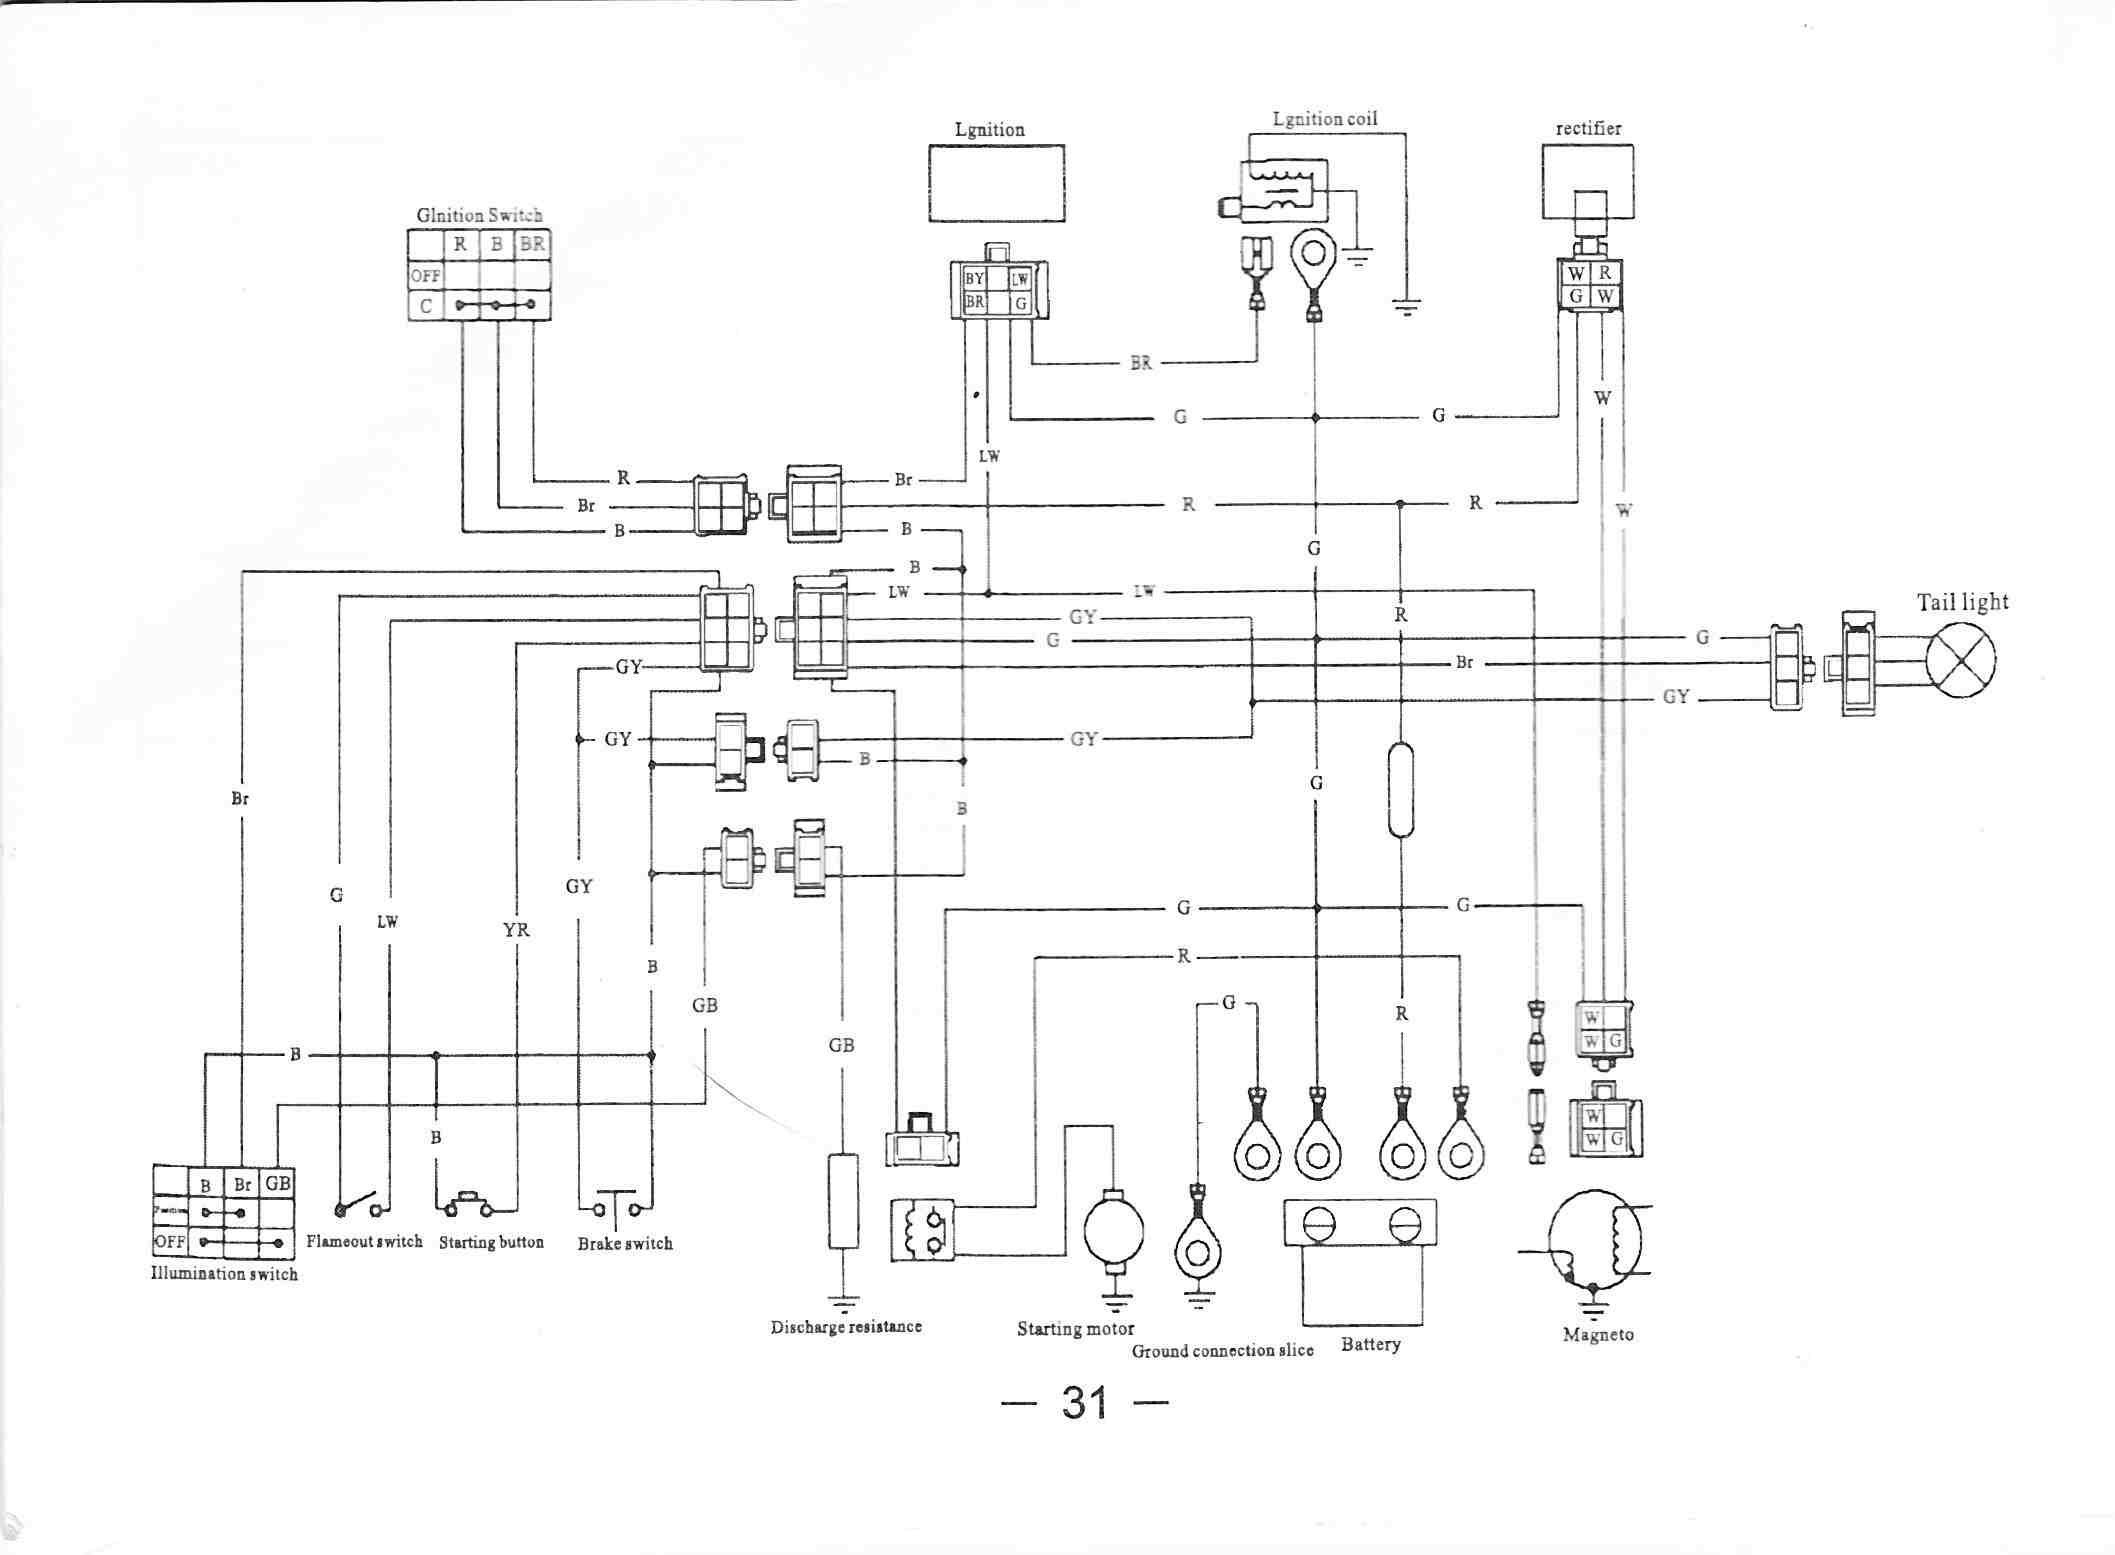 roketa 200cc wiring diagram basic wiring diagram u2022 rh rnetcomputer co 5 Pin CDI Wire Diagram 3 Wire Cdi Wiring Diagram